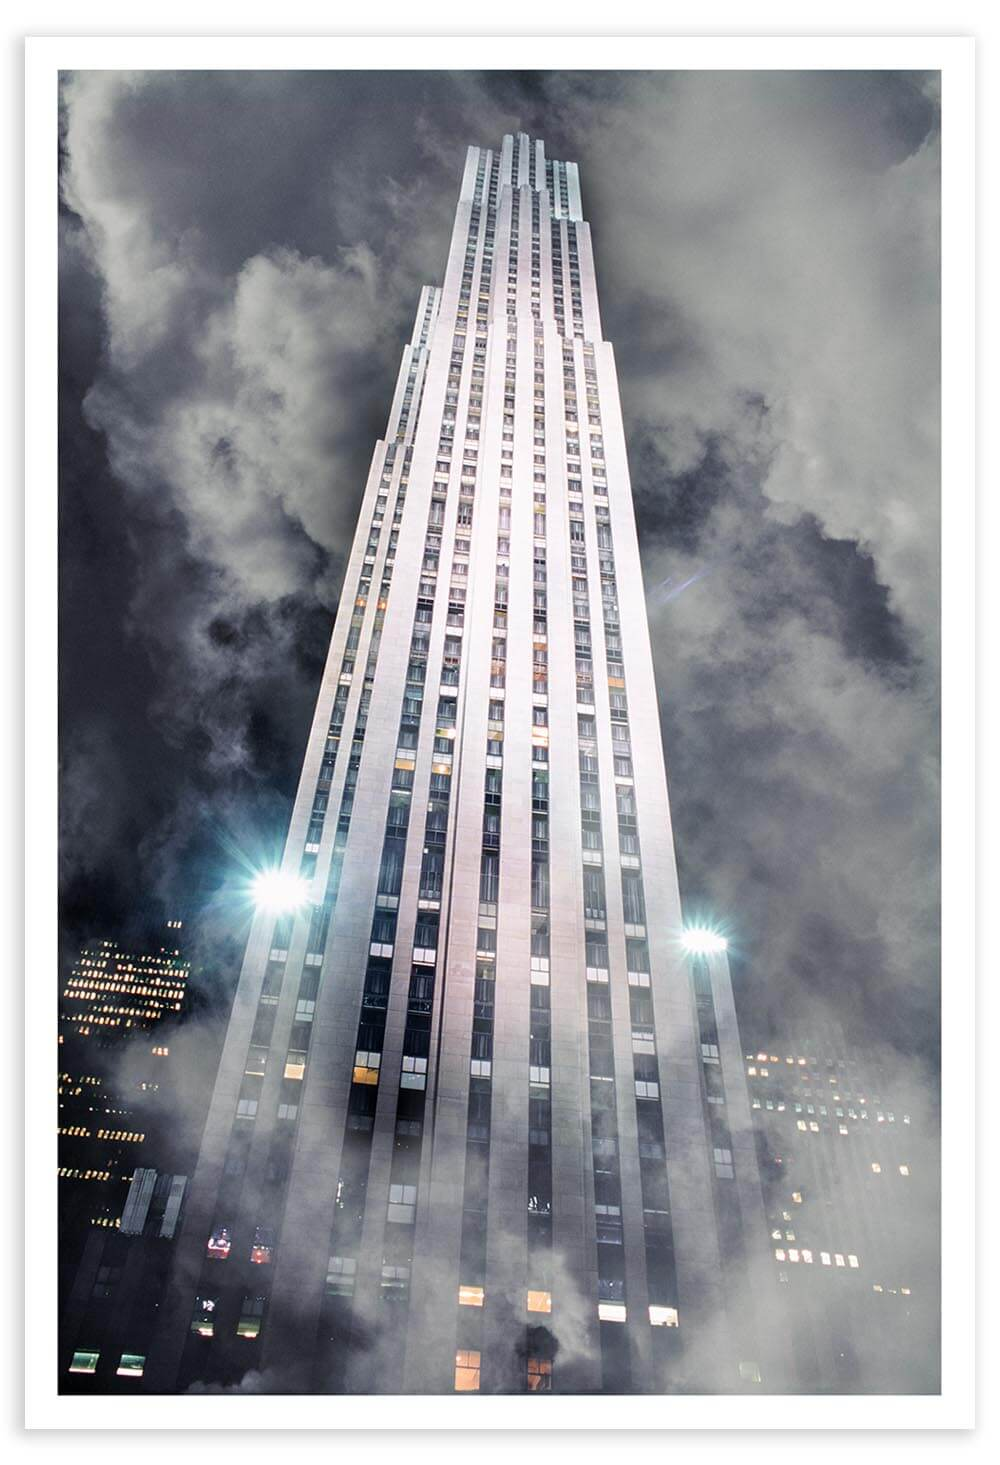 30 Rockefeller Plaza is one of the most majestic buildings in New York.